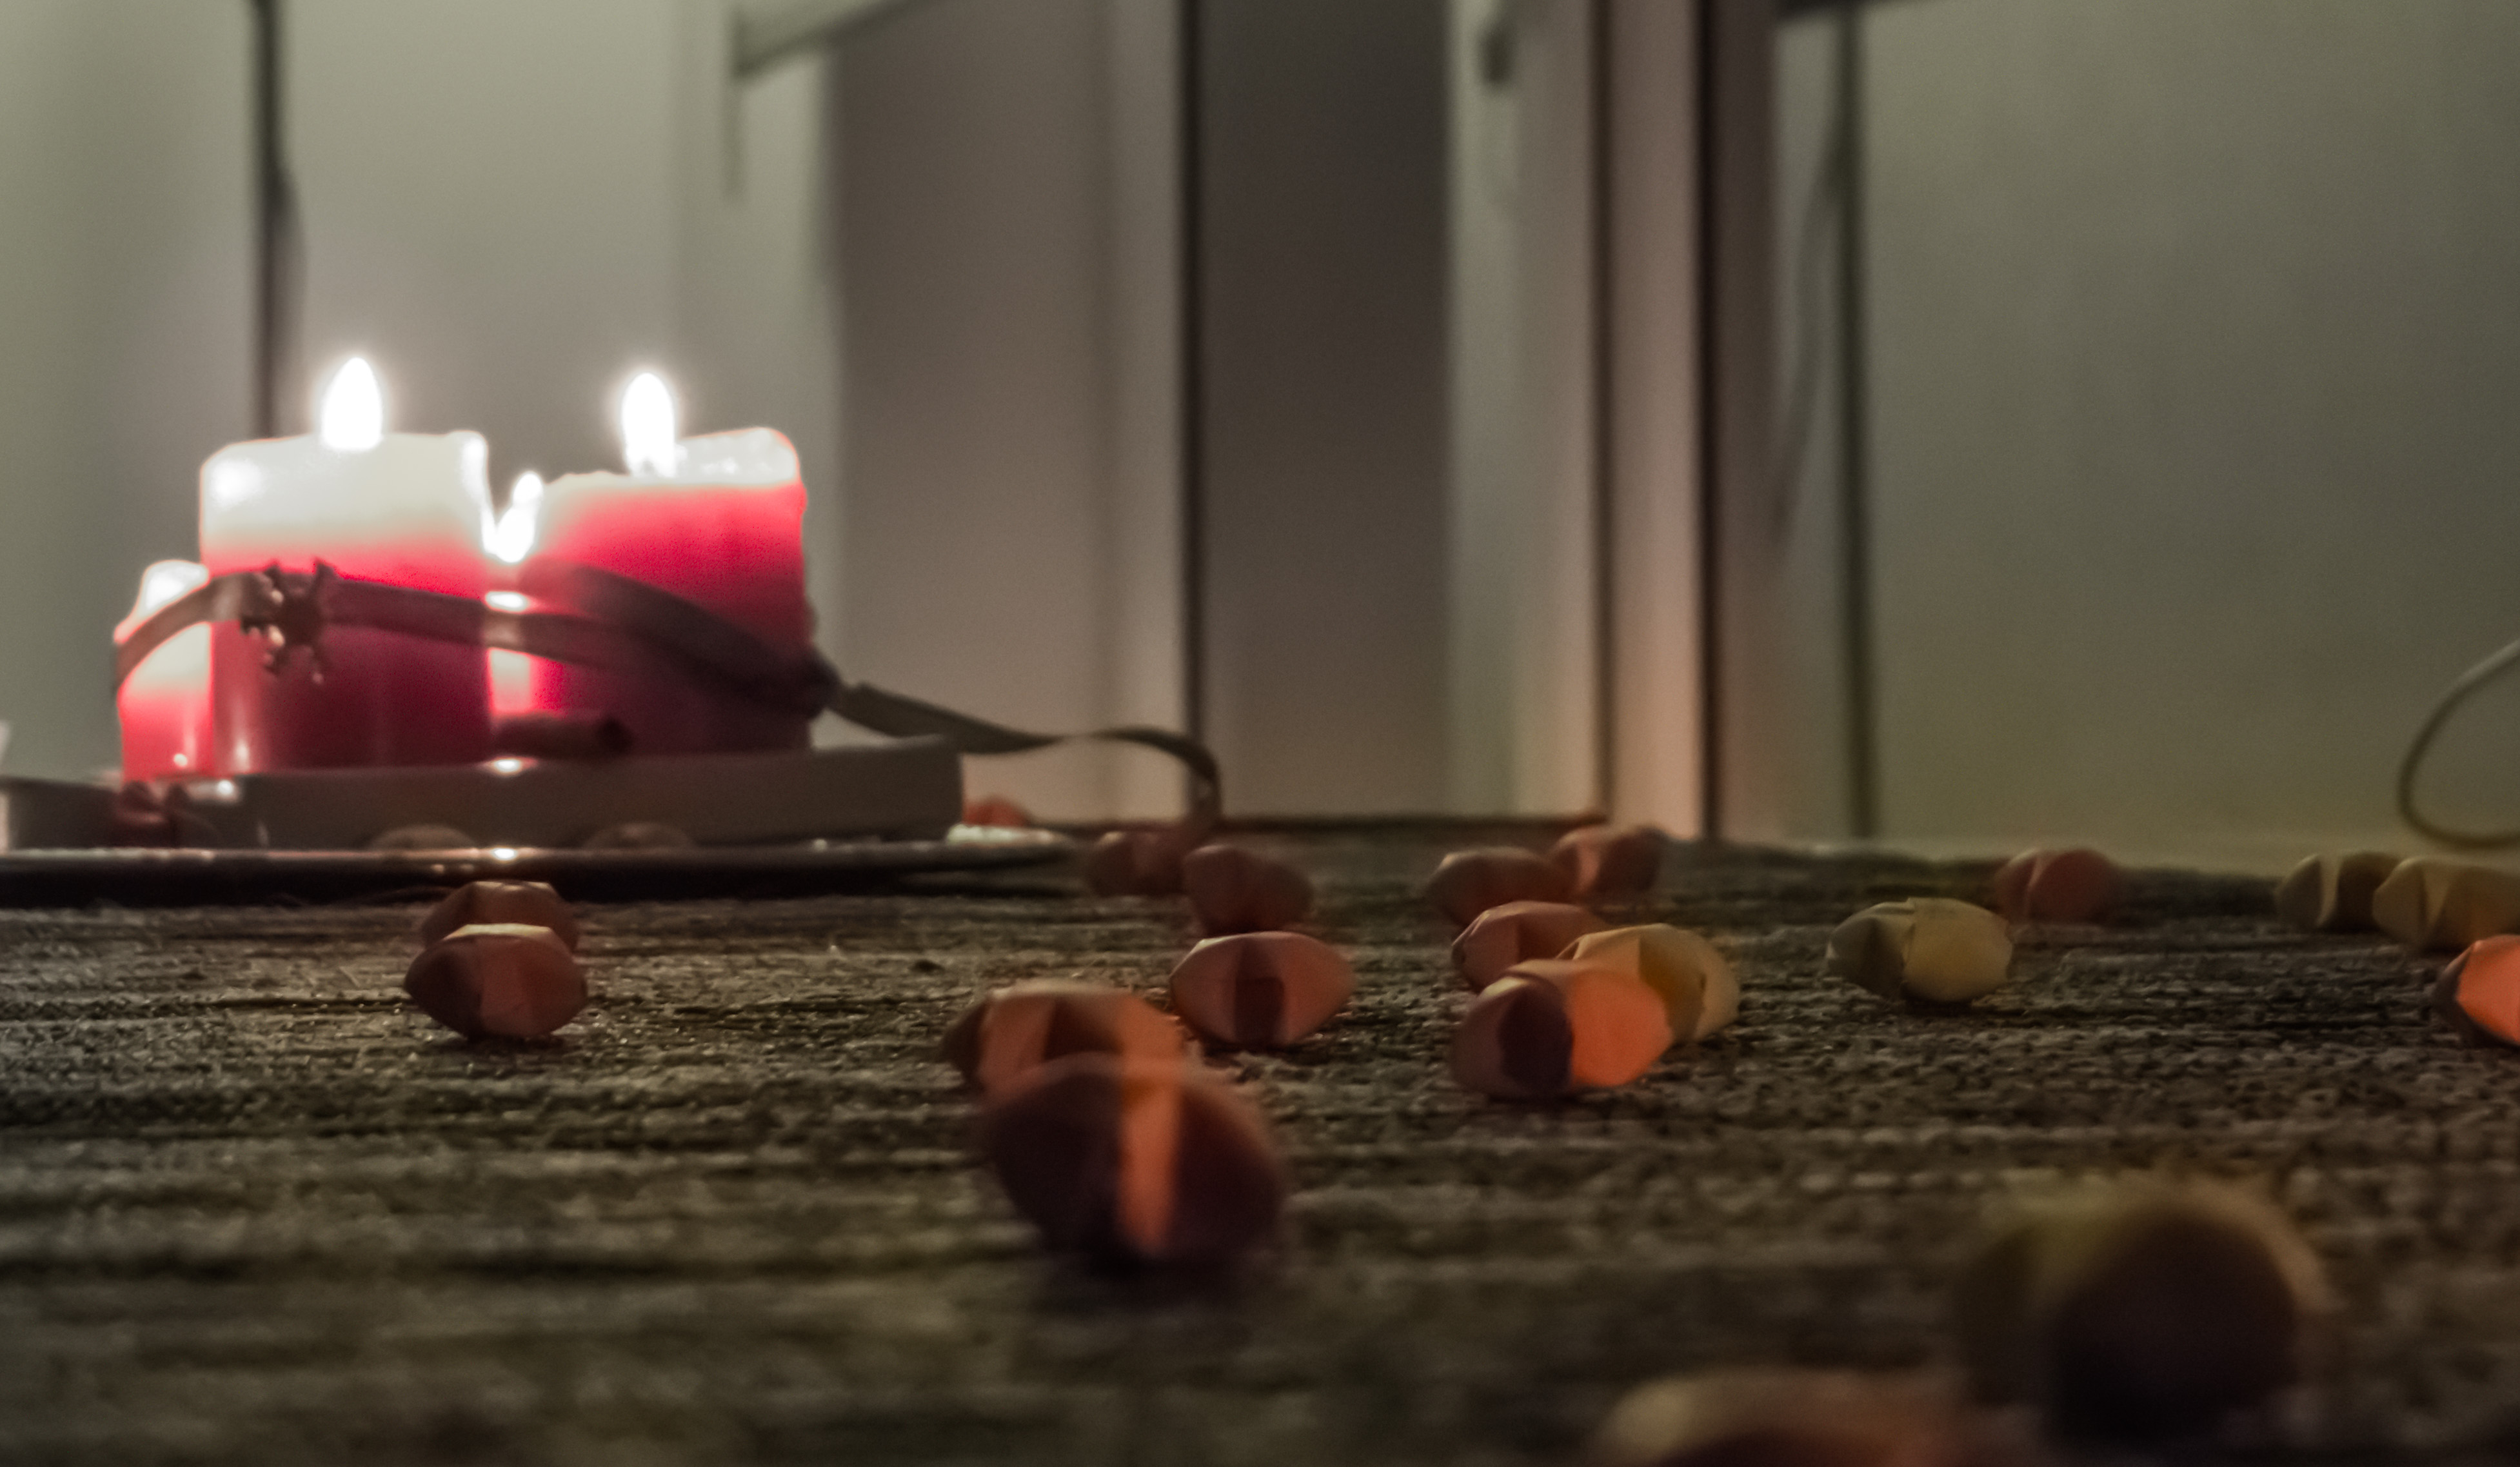 Cozy evening candles photo